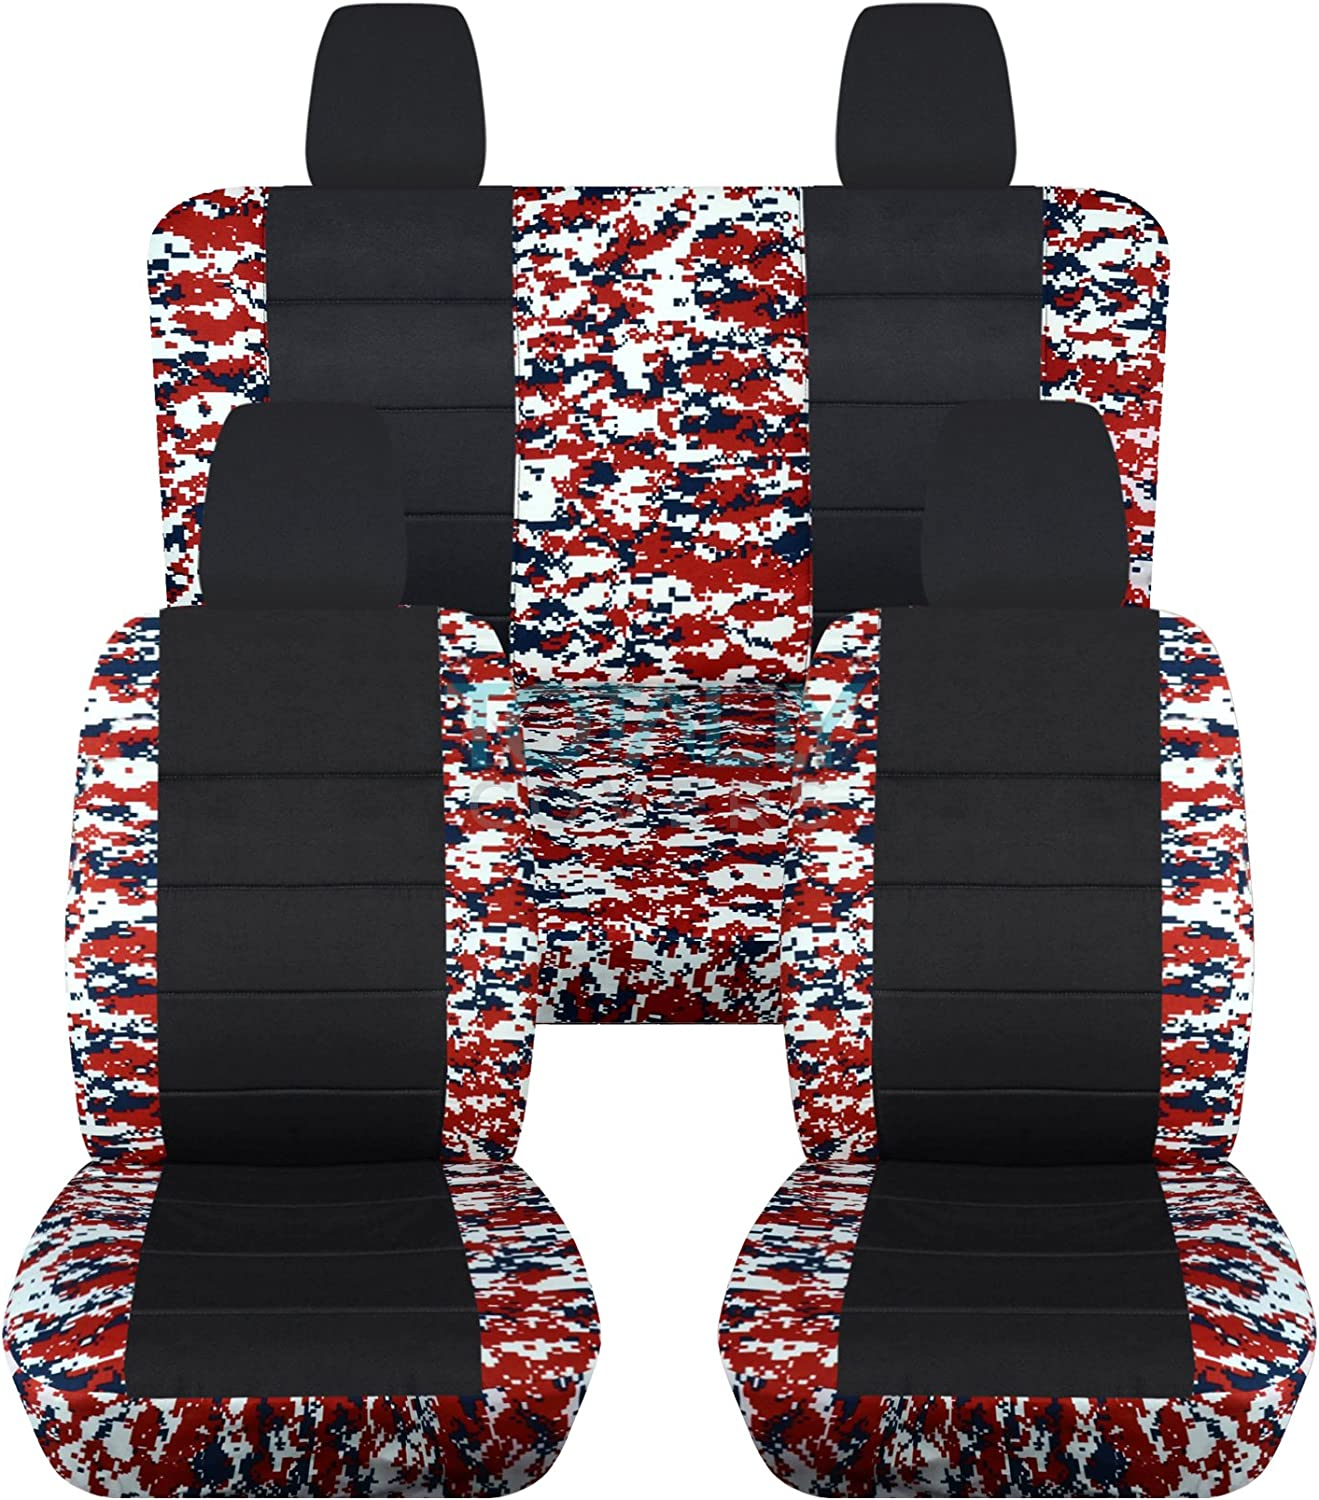 Totally Covers Compatible 正規品スーパーSALE×店内全品キャンペーン ご注文で当日配送 with 2011-2018 Wrangler Camo Jeep JK